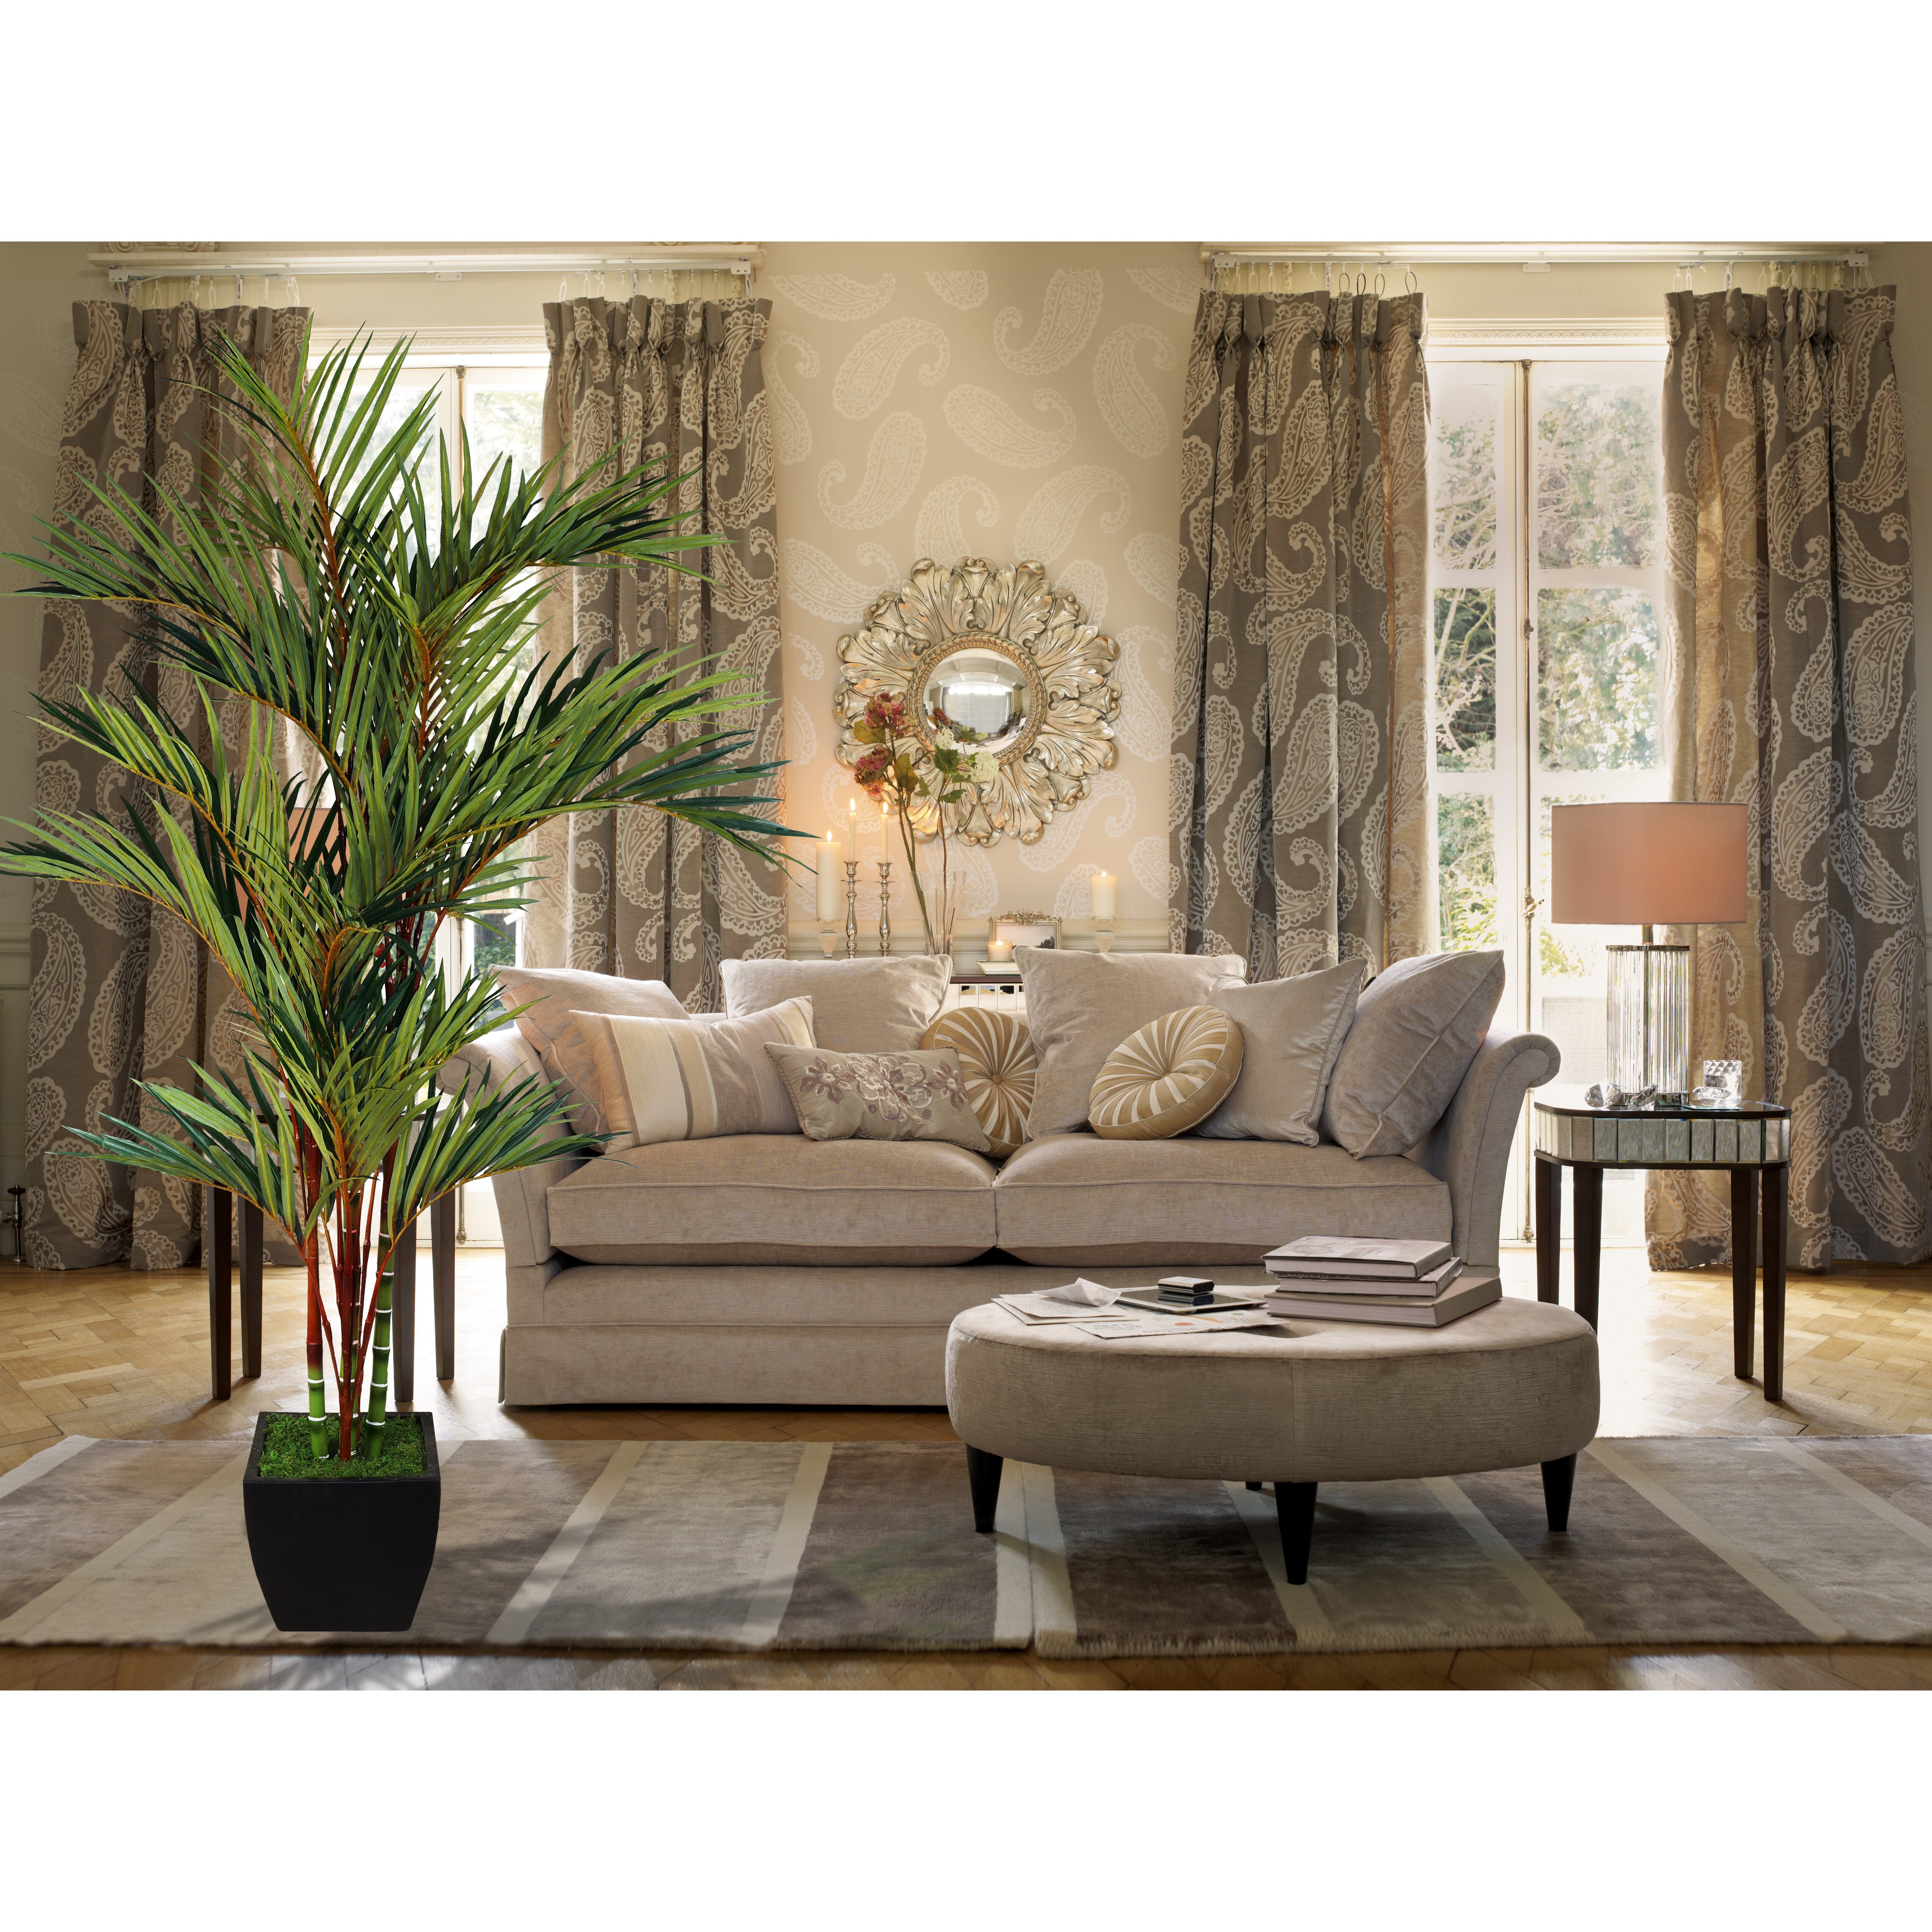 laura ashley home lipstick palm tree in planter reviews. Black Bedroom Furniture Sets. Home Design Ideas